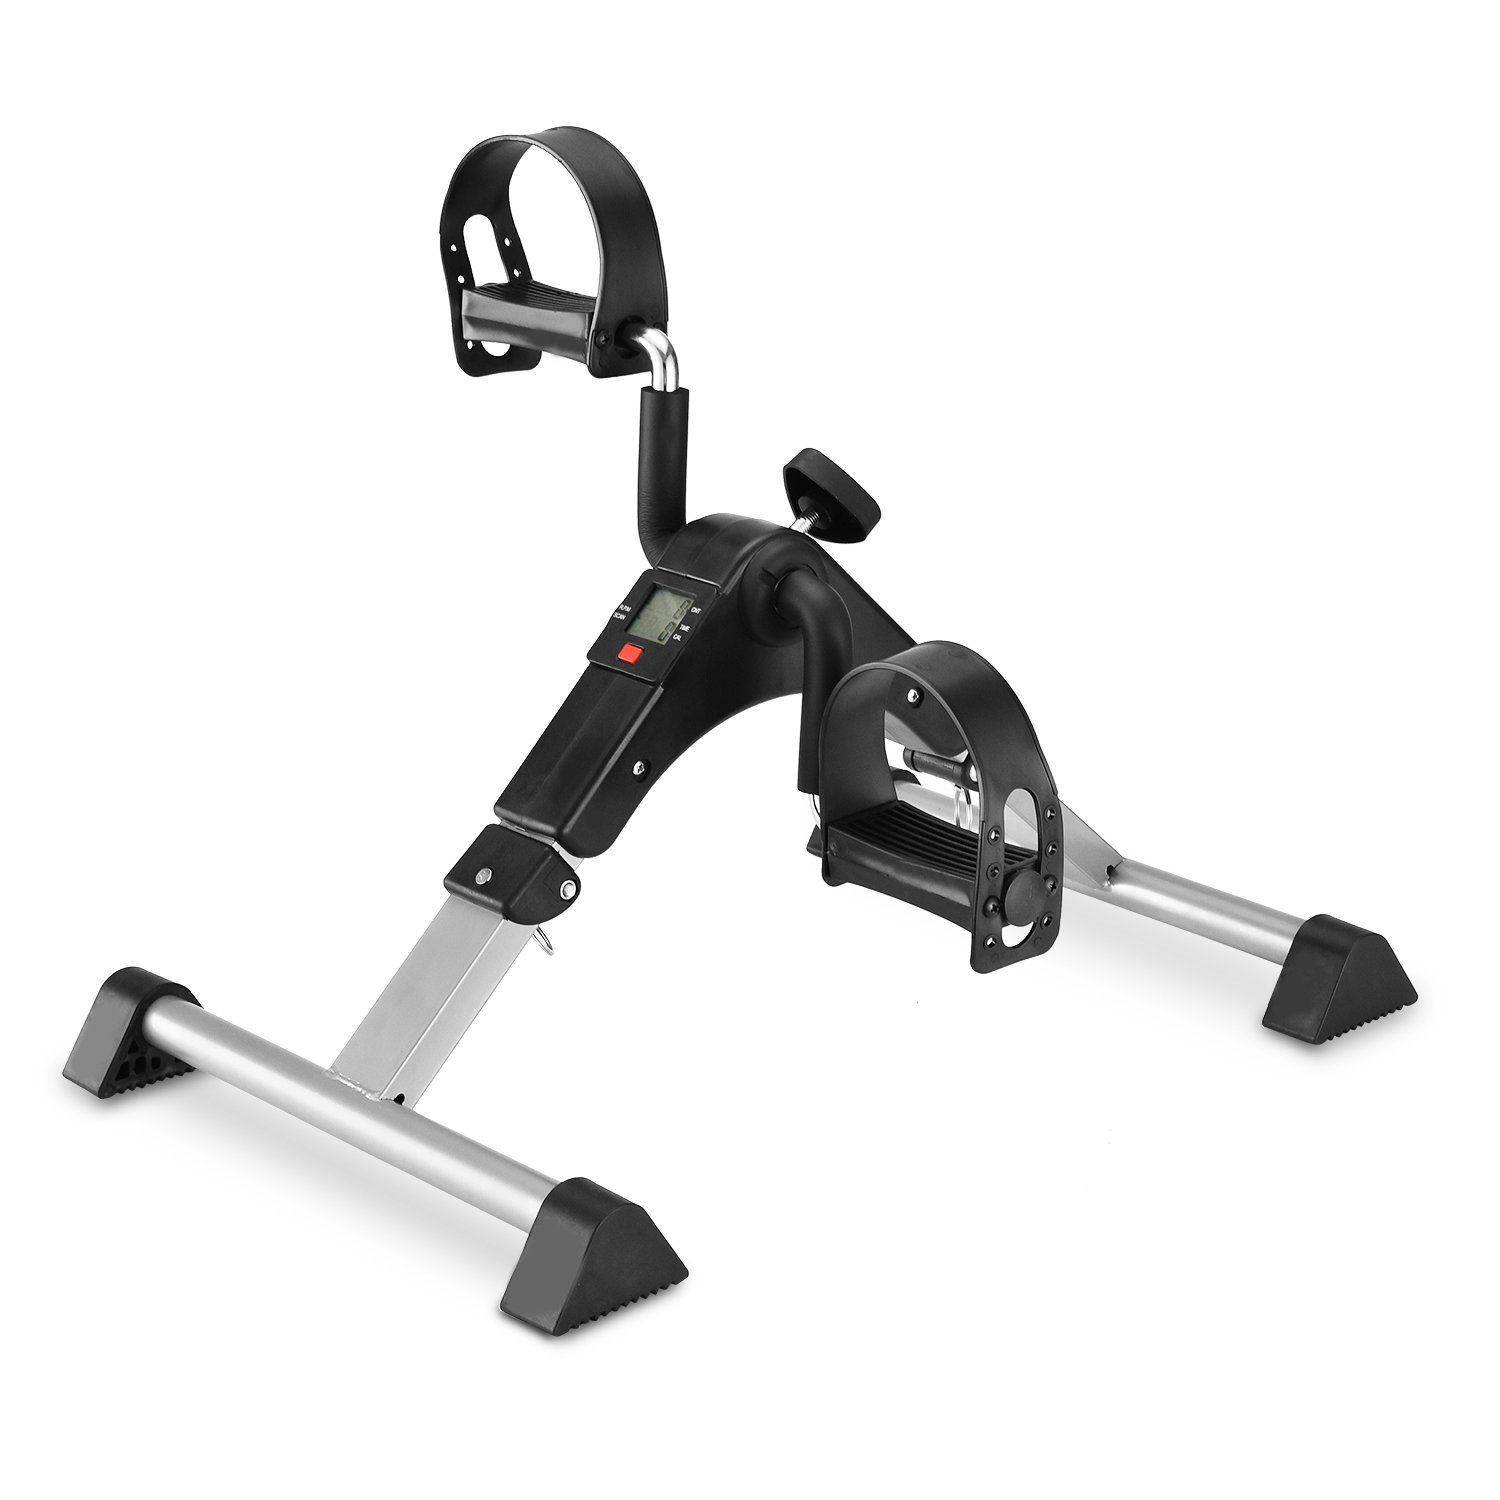 Pedal Exerciser Mini Desk Cycle Exercise Bike With Lcd Monitor Foldable Black Grey Find Out More At T In 2020 Biking Workout Mini Exercise Bike No Equipment Workout